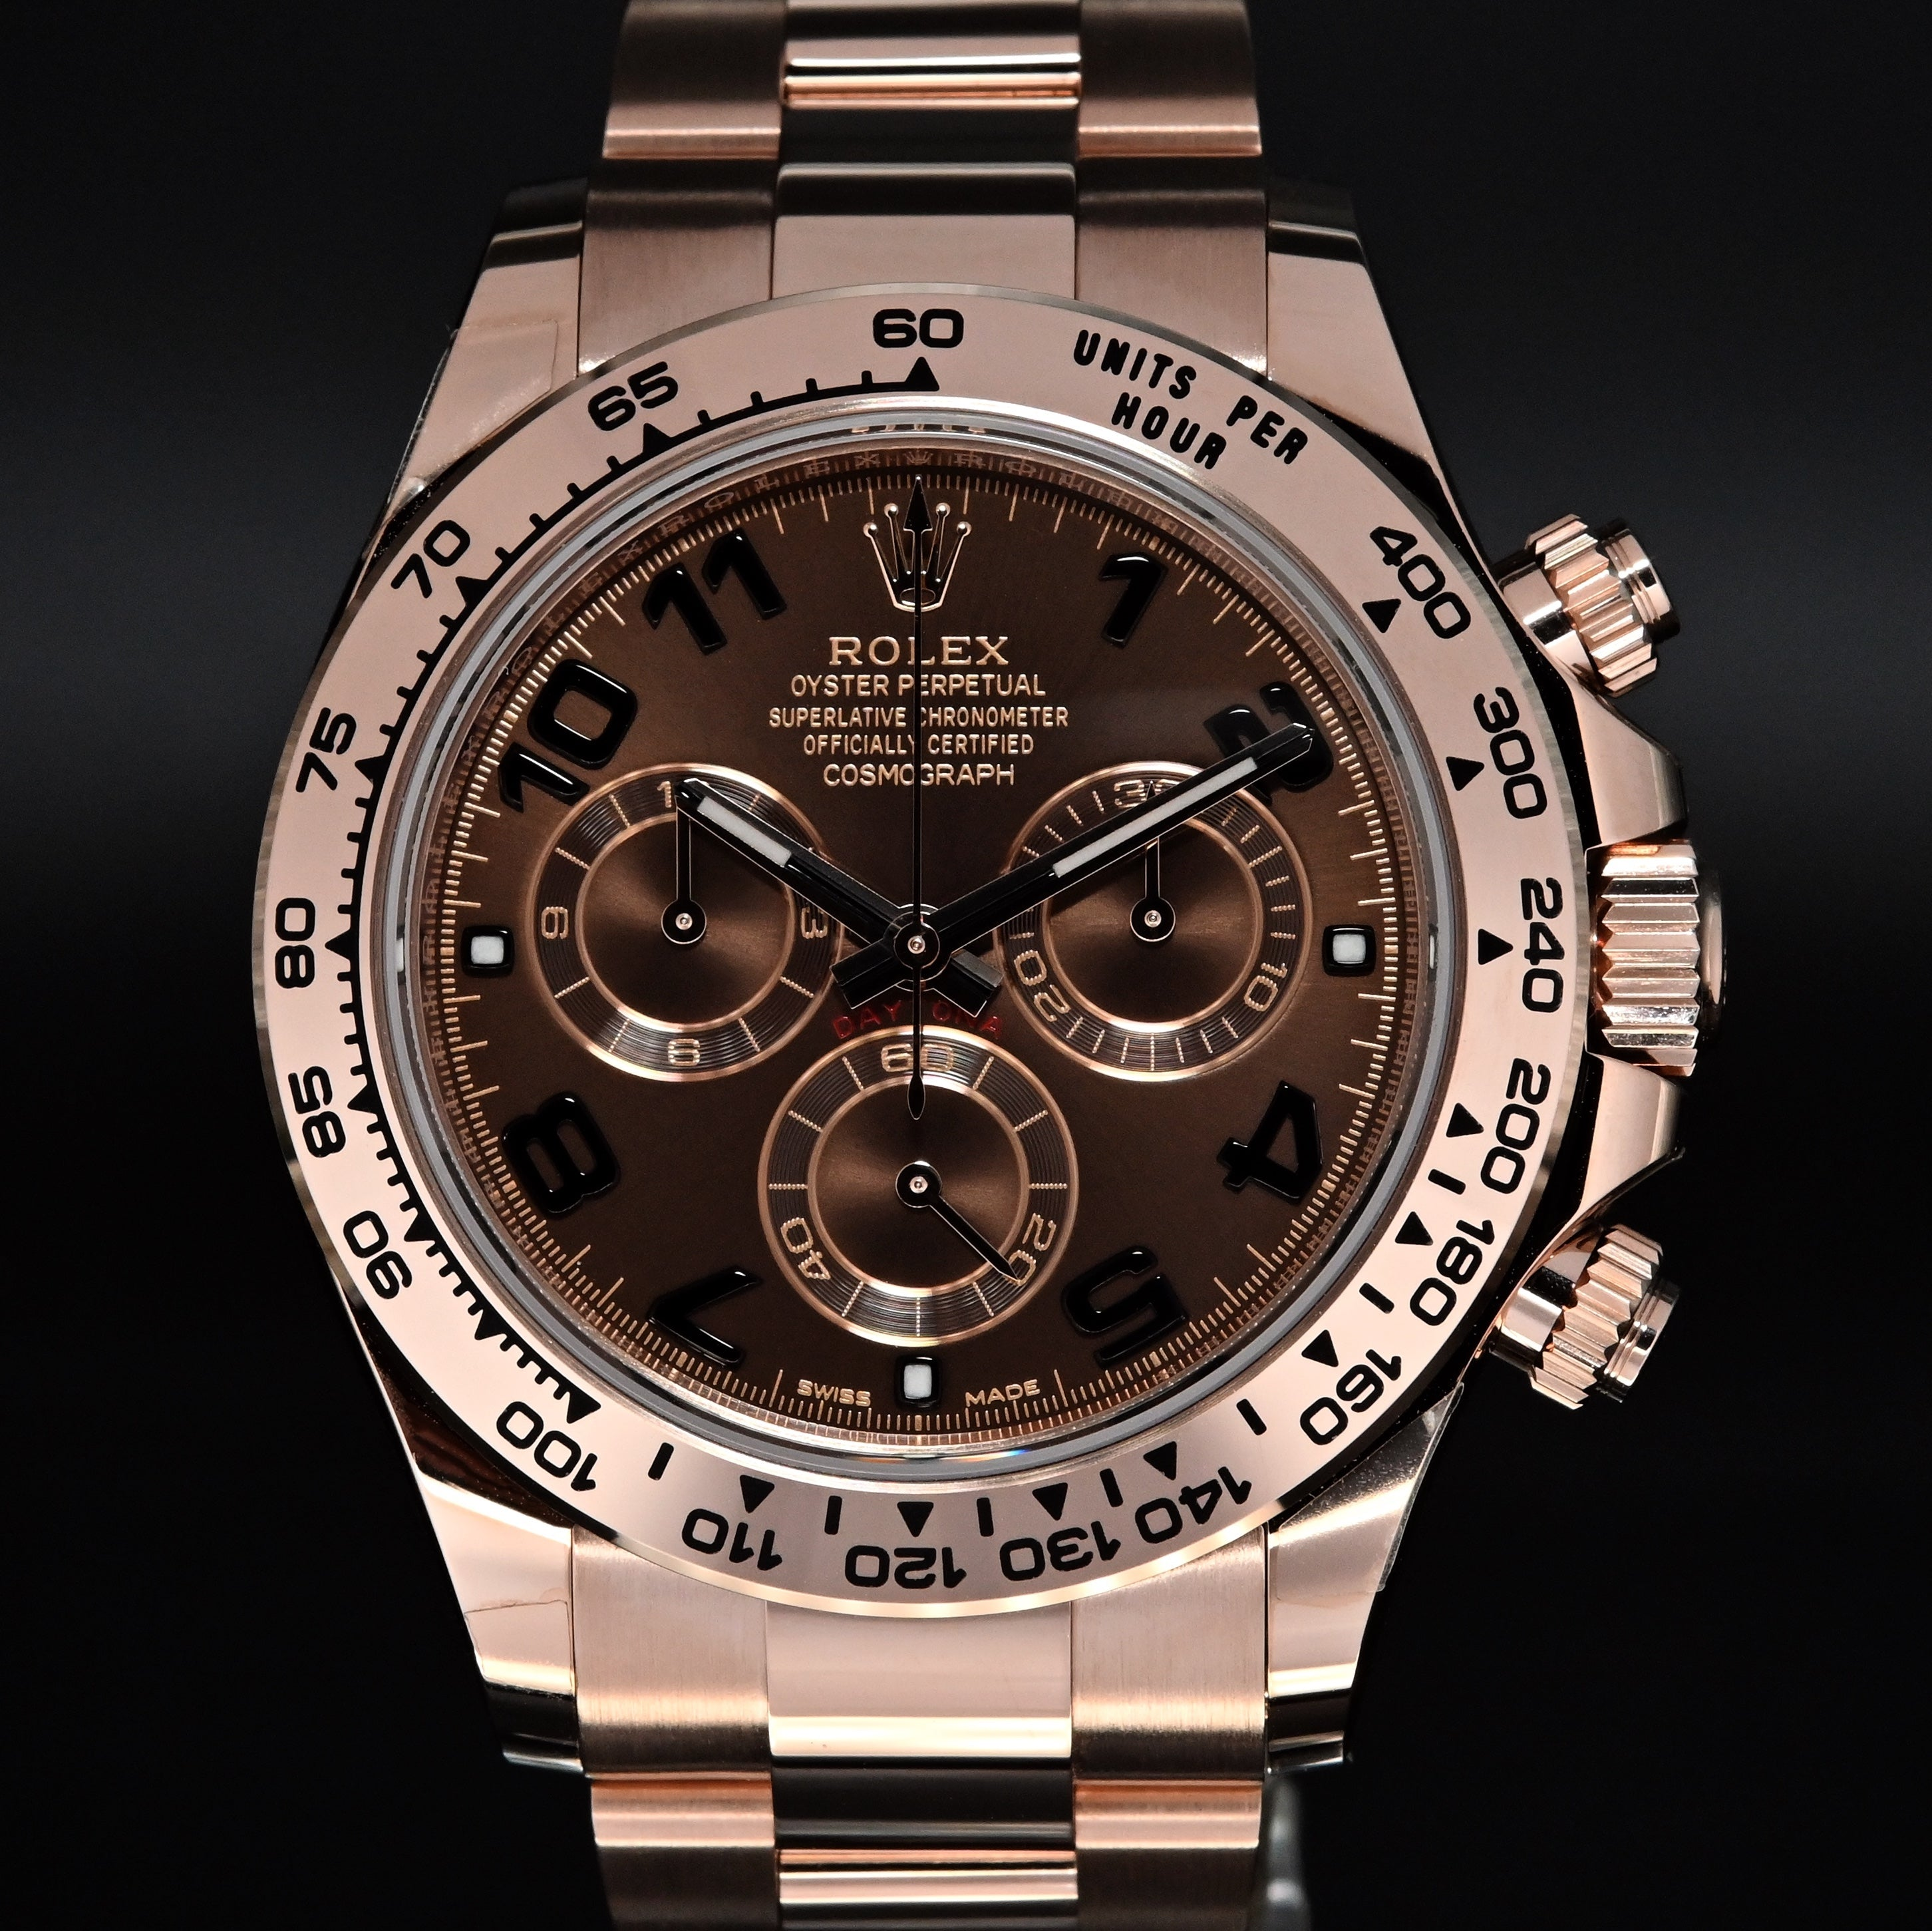 [Brand New Watch] Rolex Cosmograph Daytona 40mm 116505 Chocolate Dial (Out of Production)